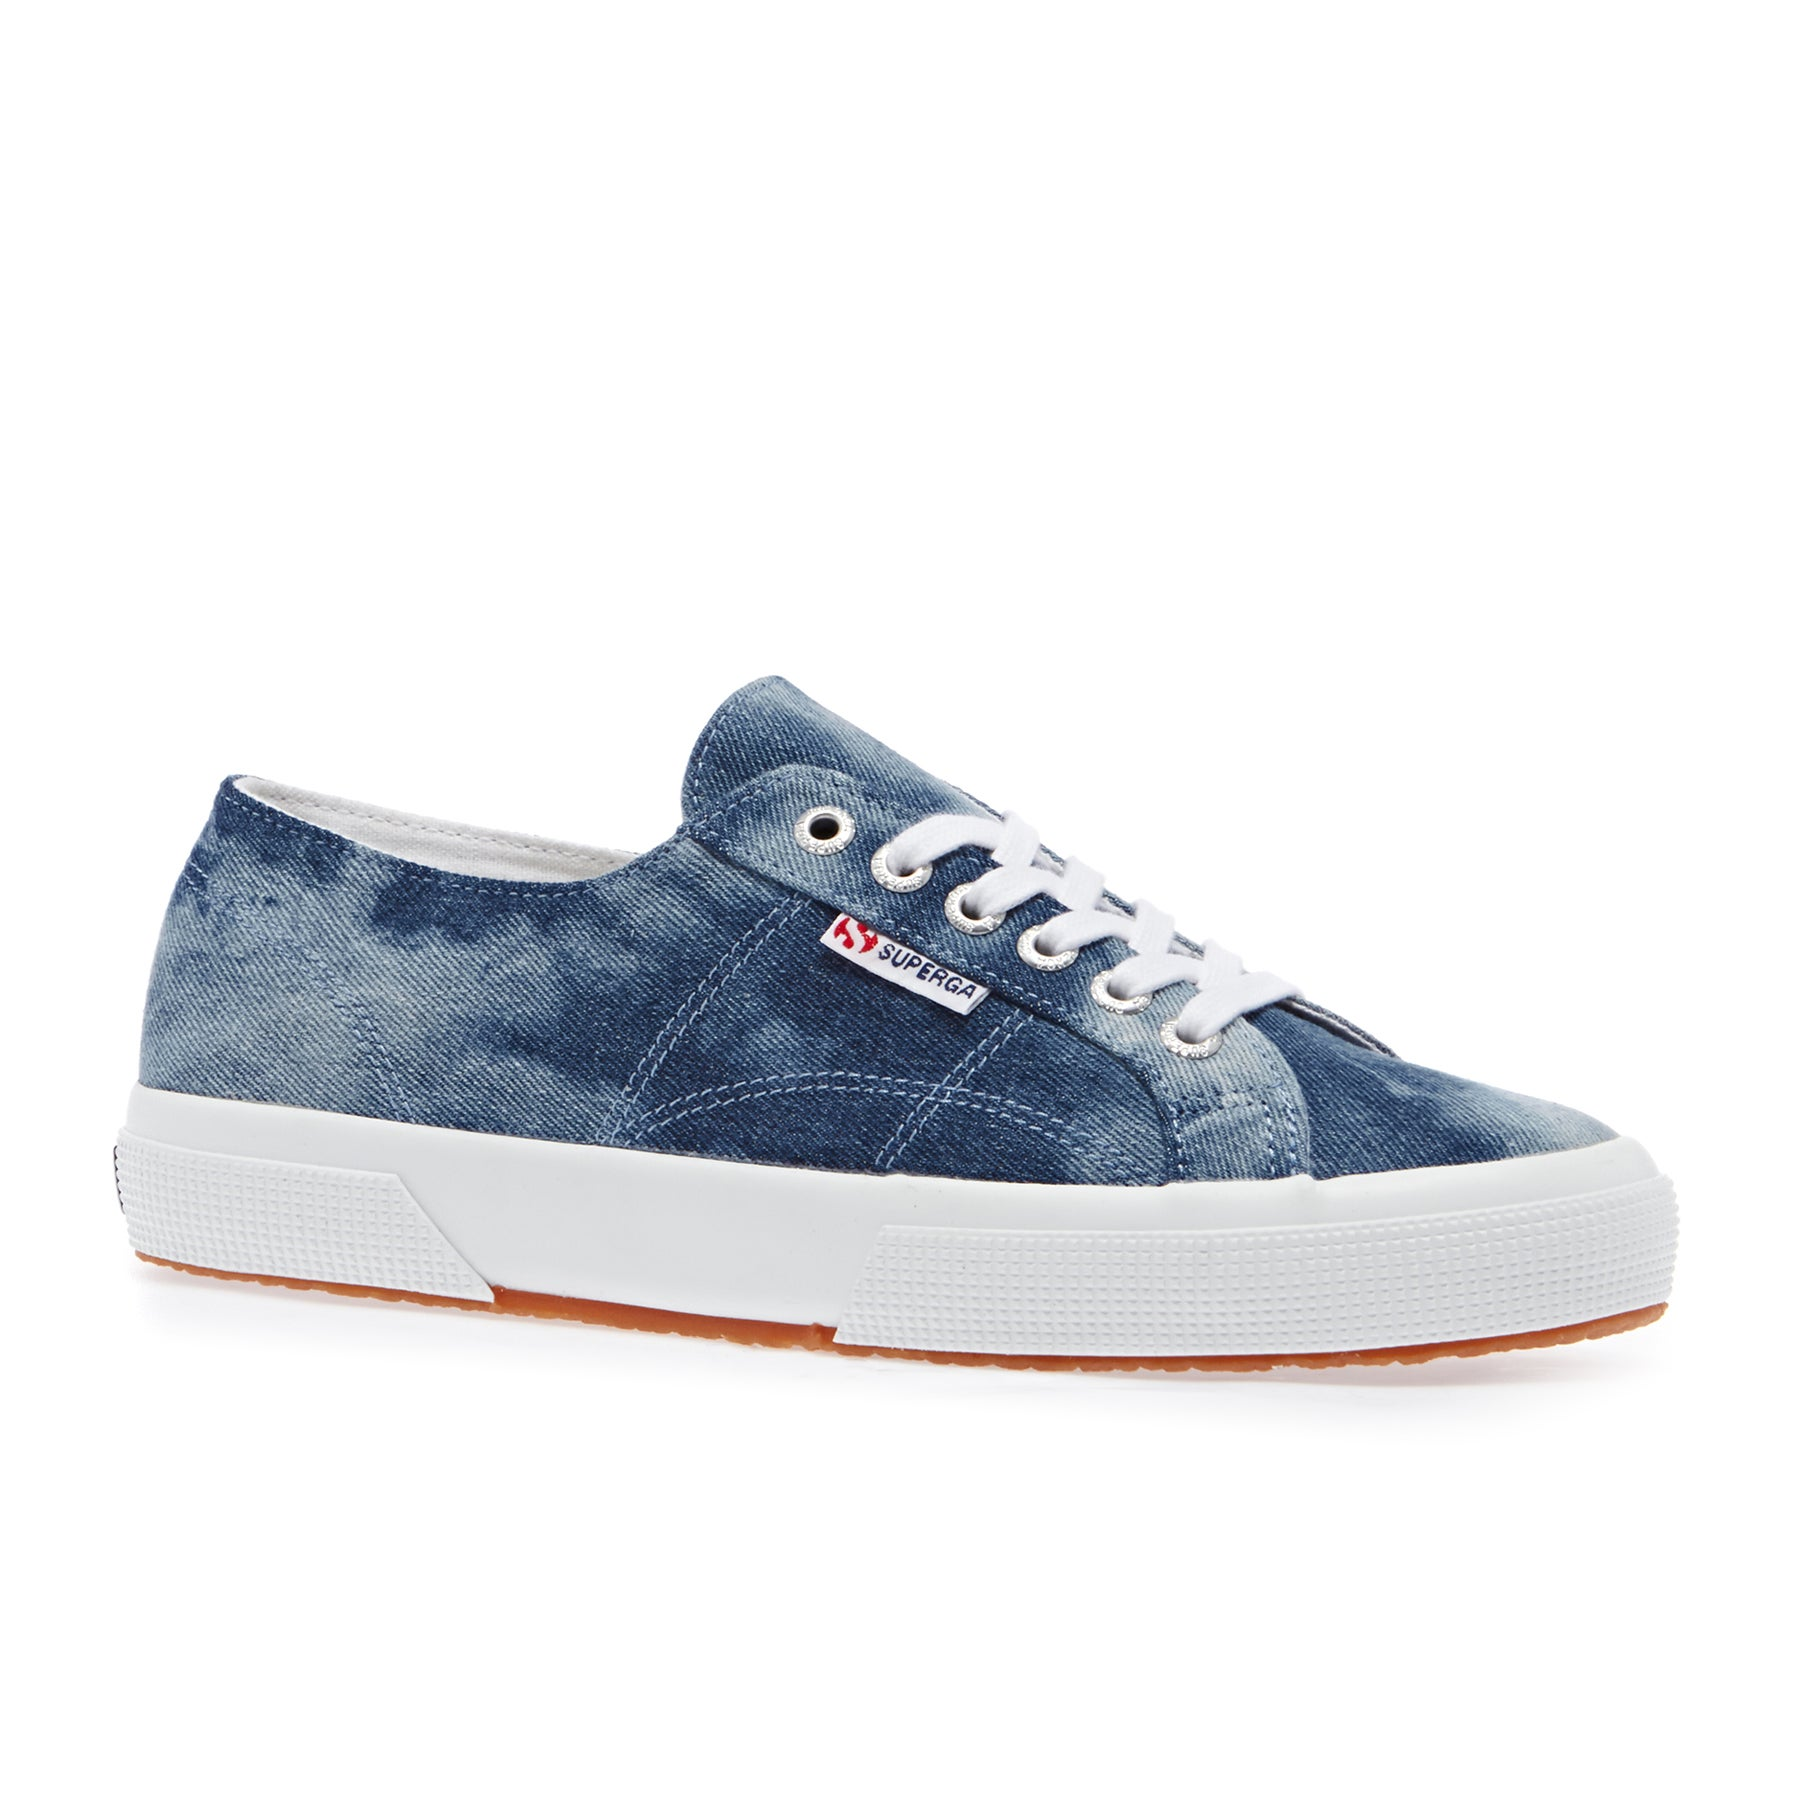 Superga 2750 Tiedyedenimu Shoes - Blue